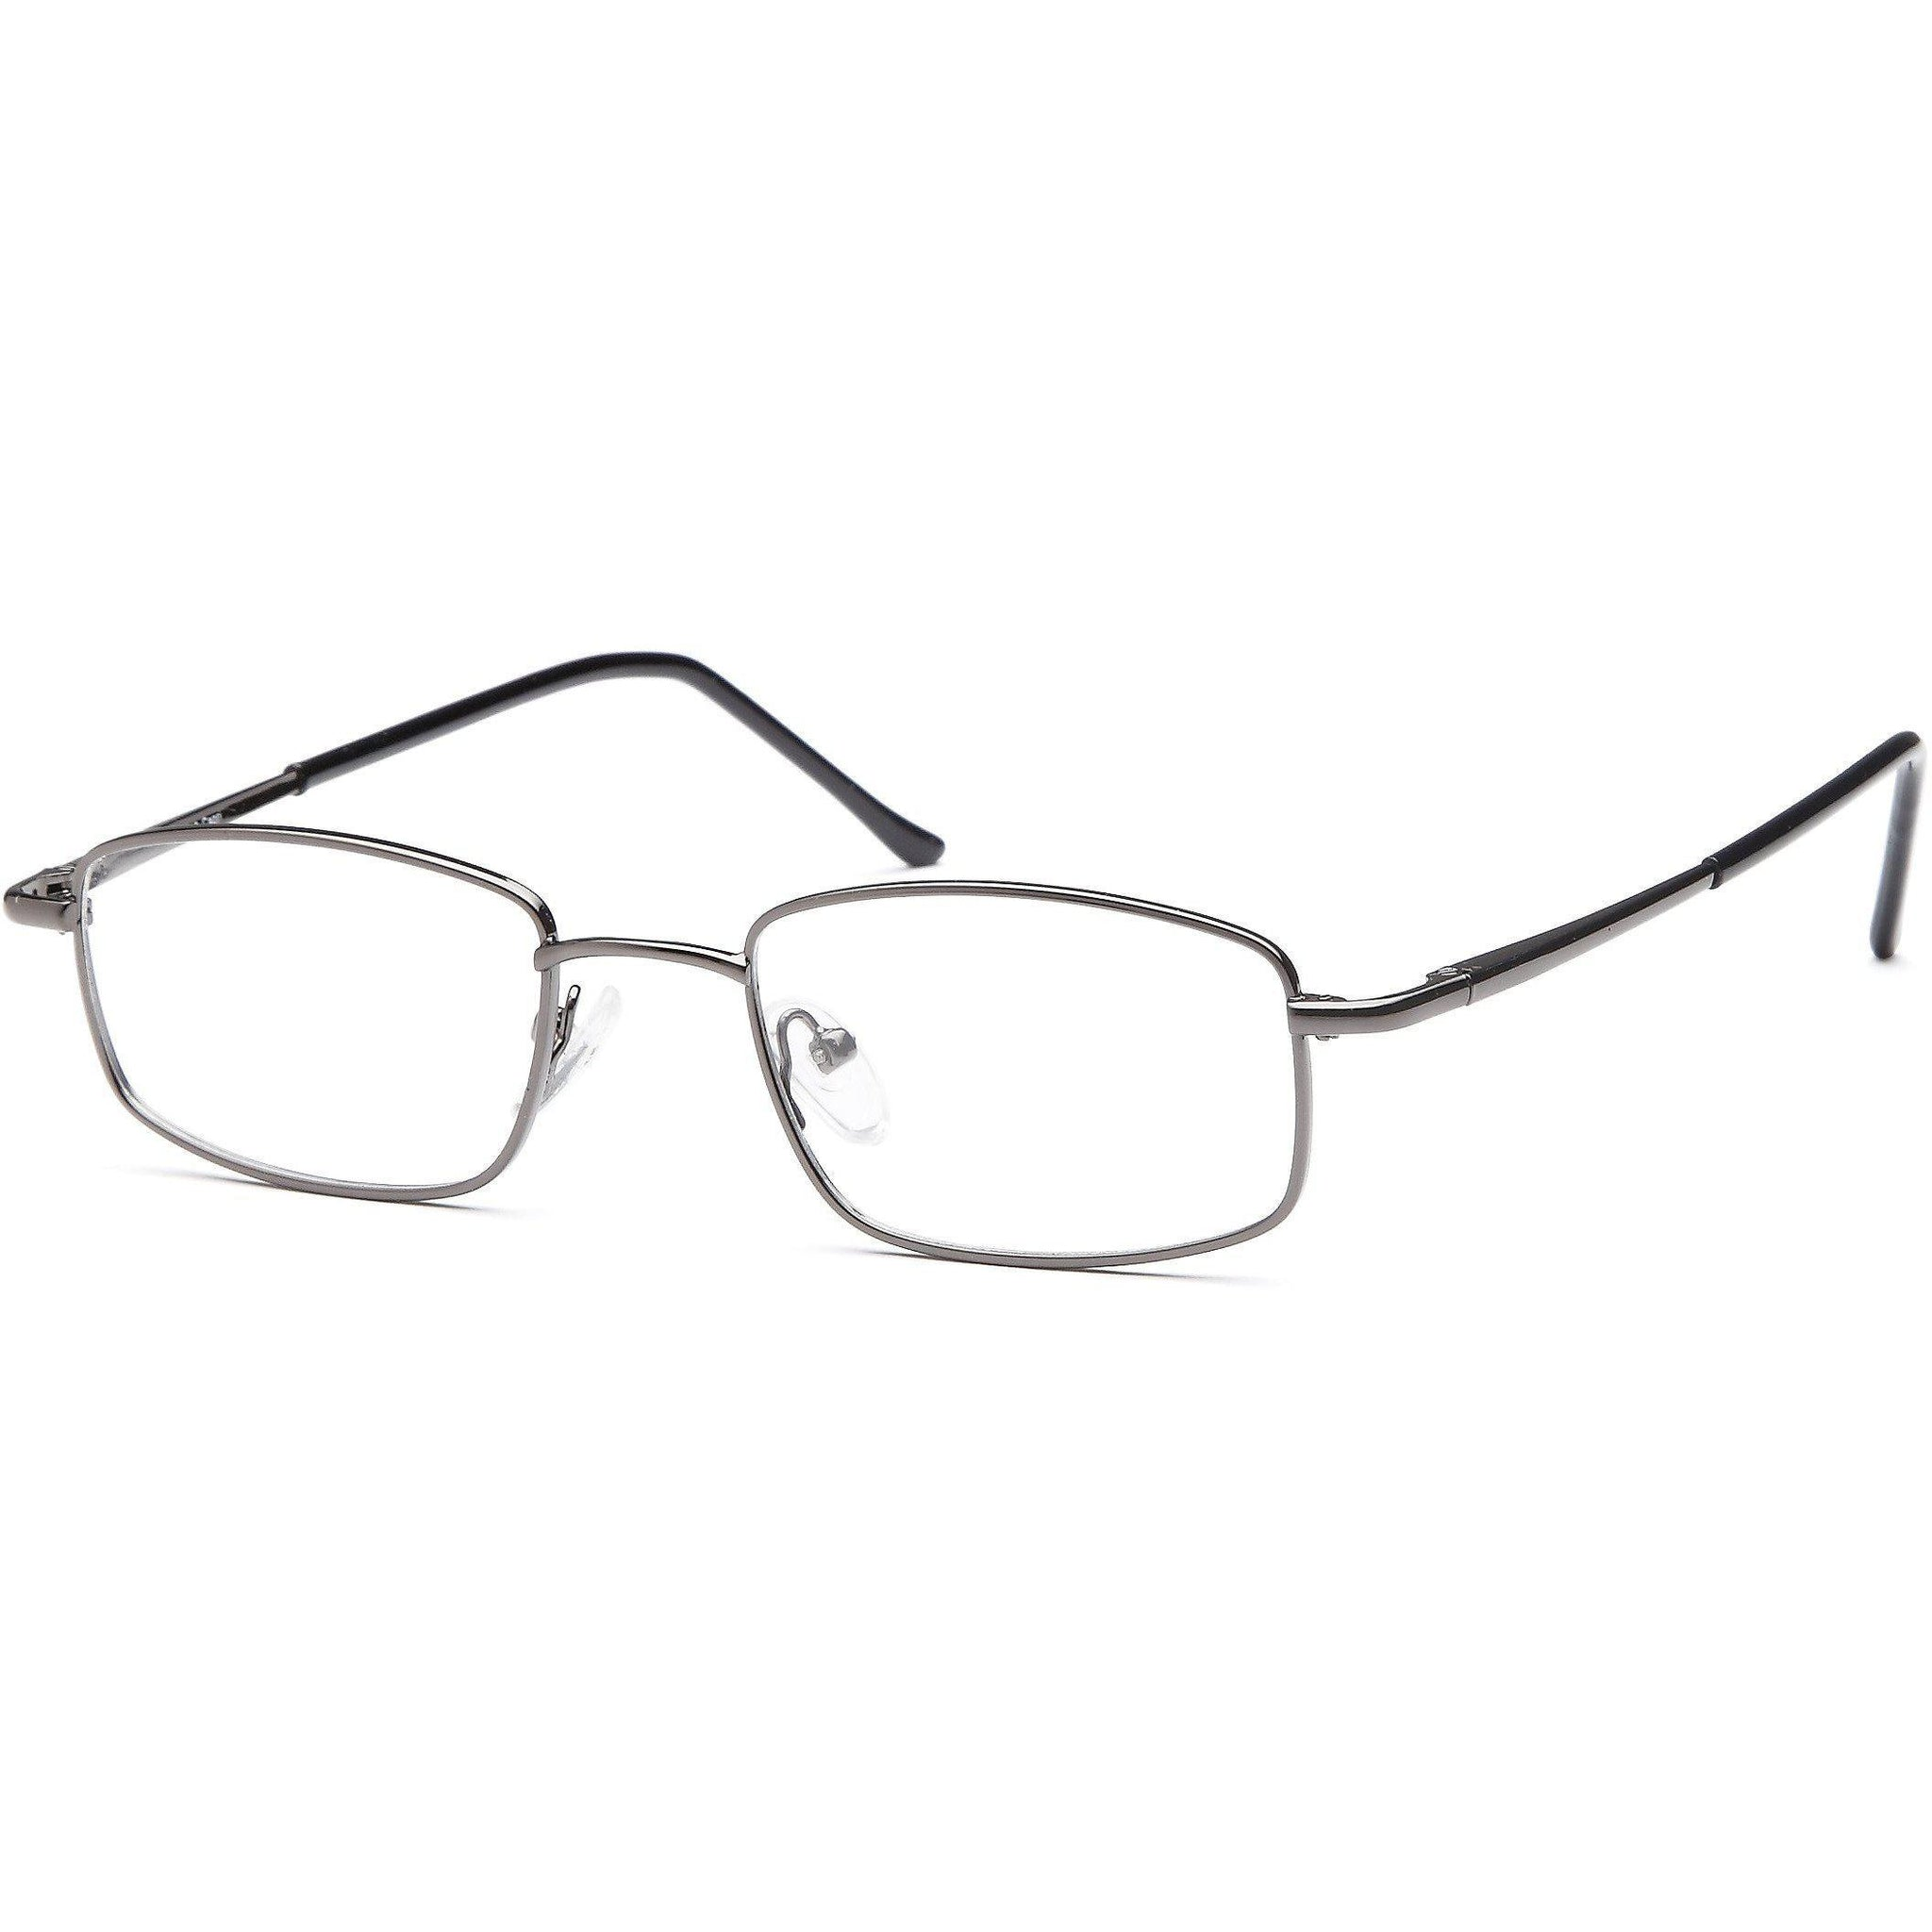 Appletree Prescription Glasses 7713 Eyeglasses Frame